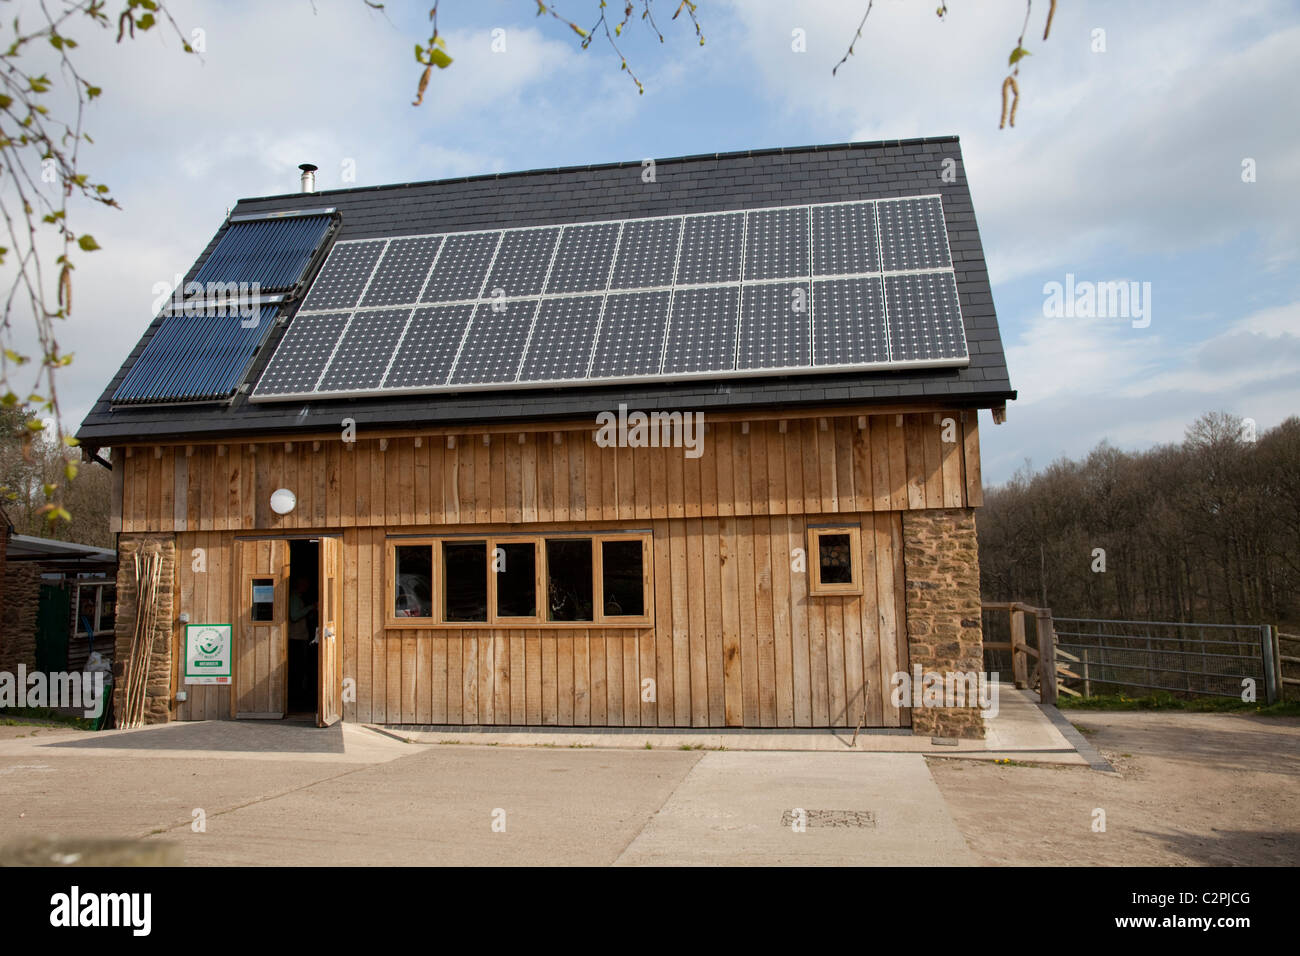 Solar thermal and PV panels on roof of sustainable oak timber building Ruskin Studio Wyre Forest Bewdley UK - Stock Image